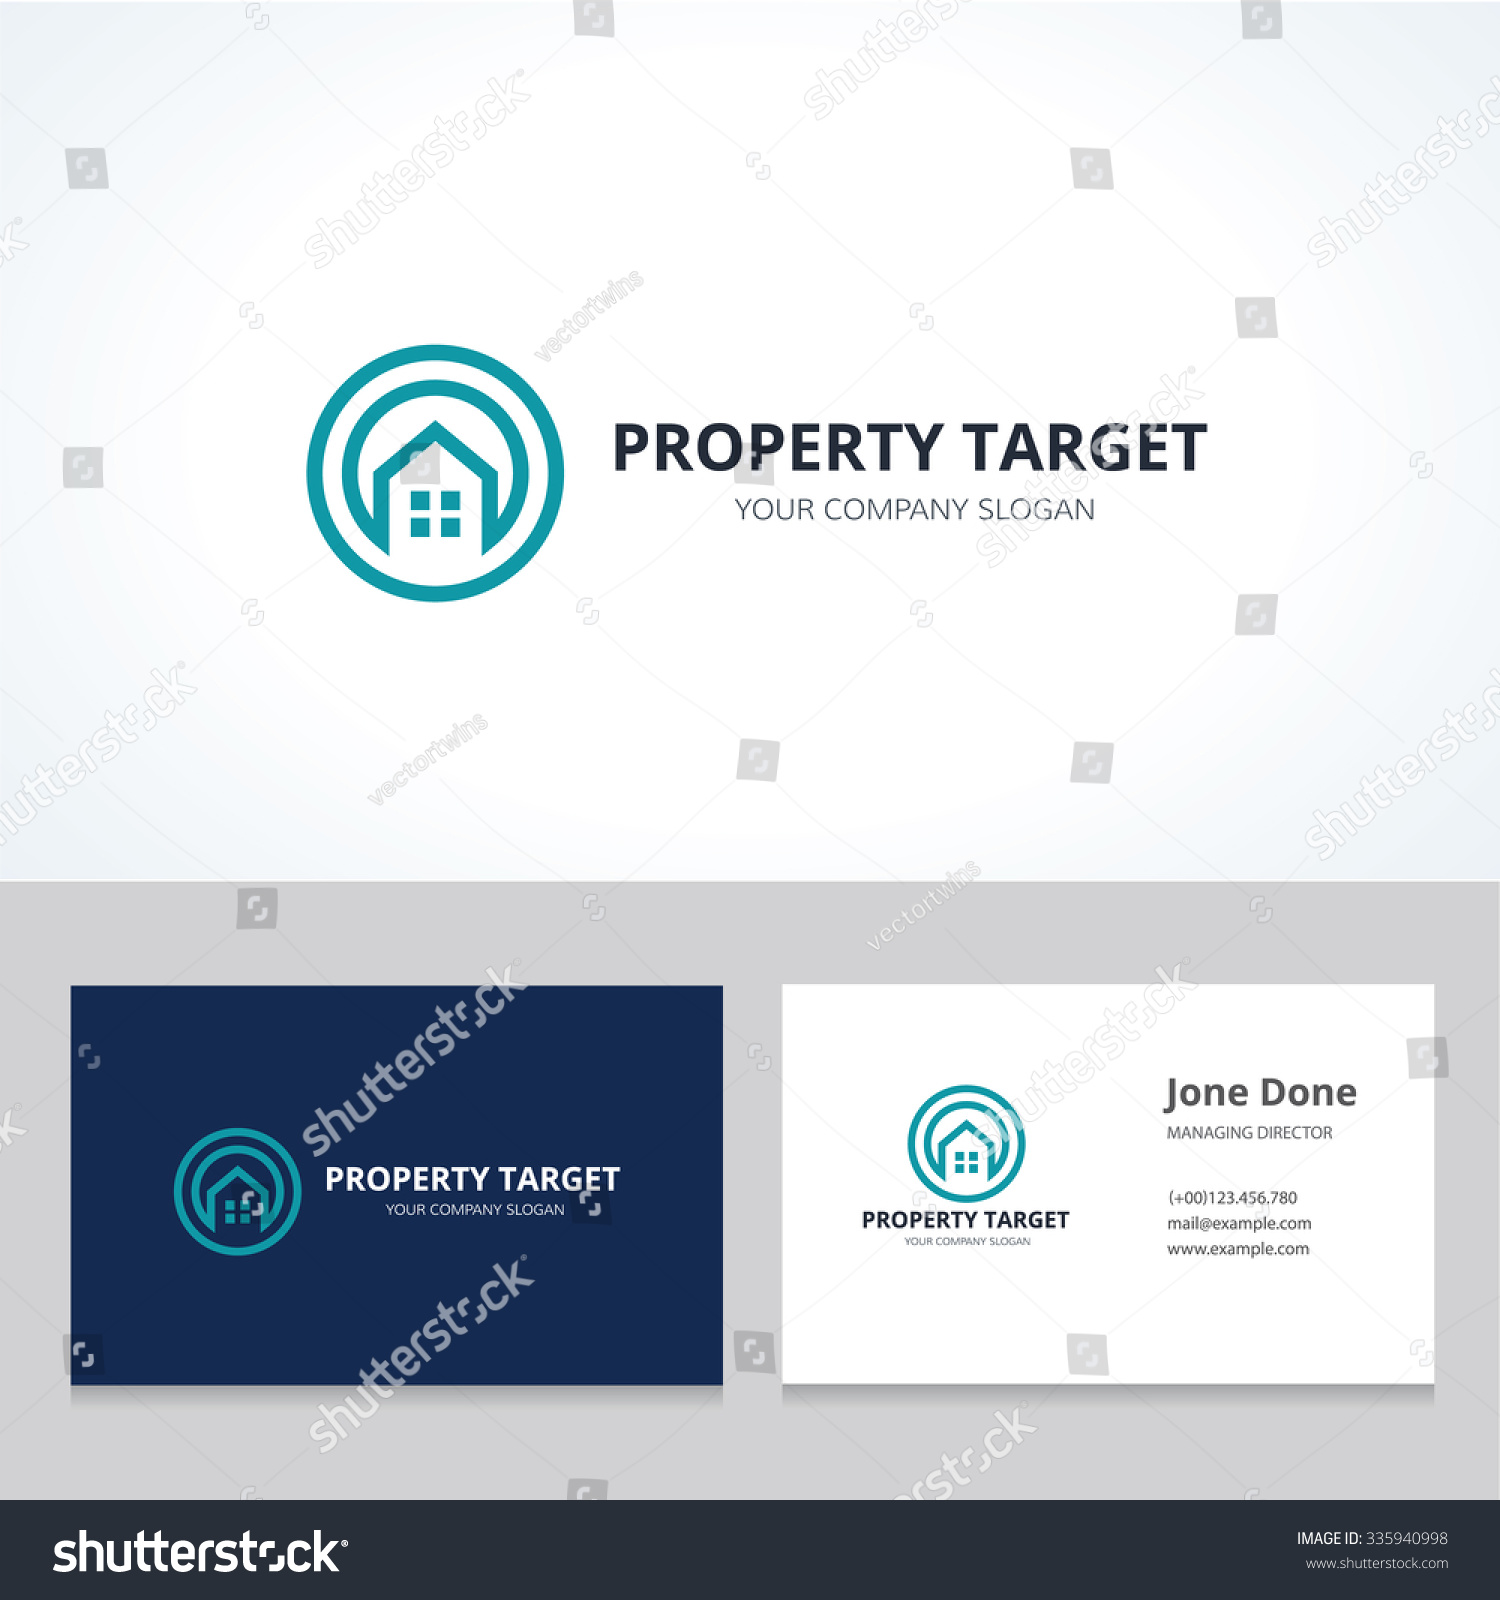 Property Target Real Estate Logo Business Stock Vector 335940998 ...